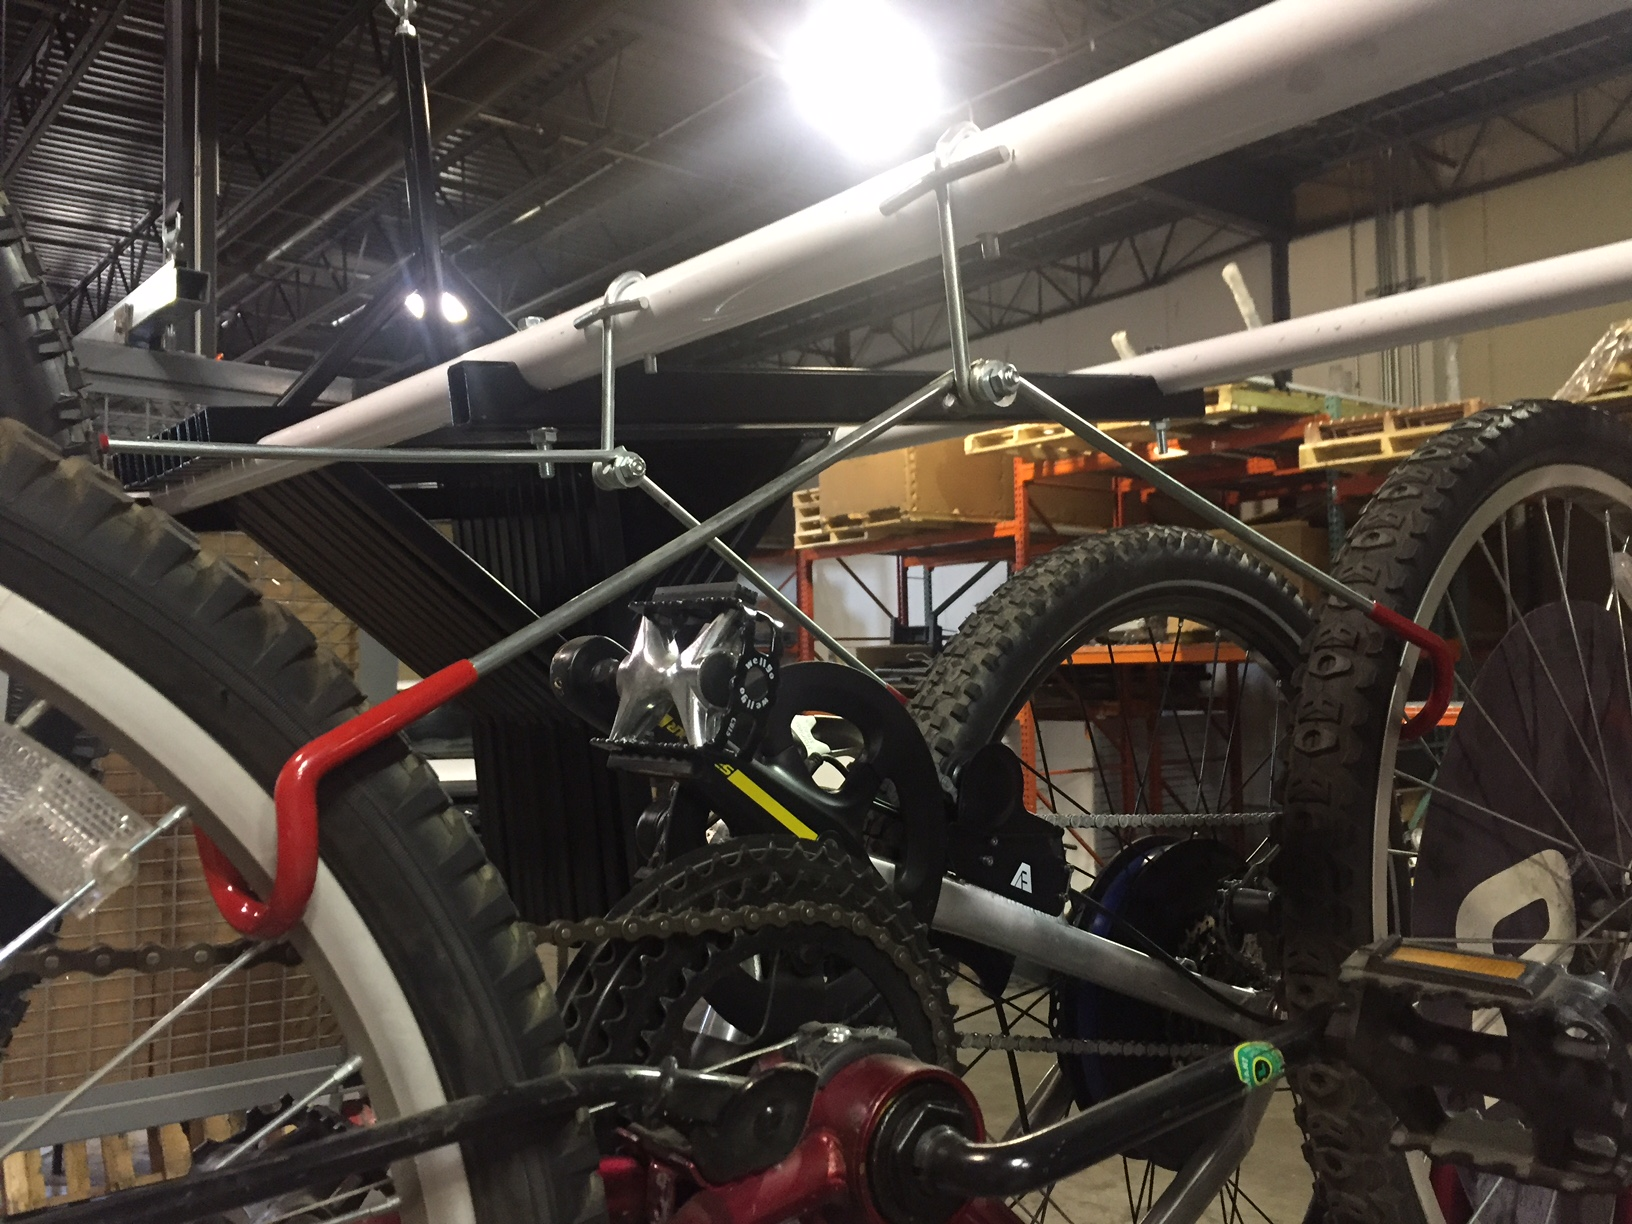 Motorized Bicycle Ceiling Lift